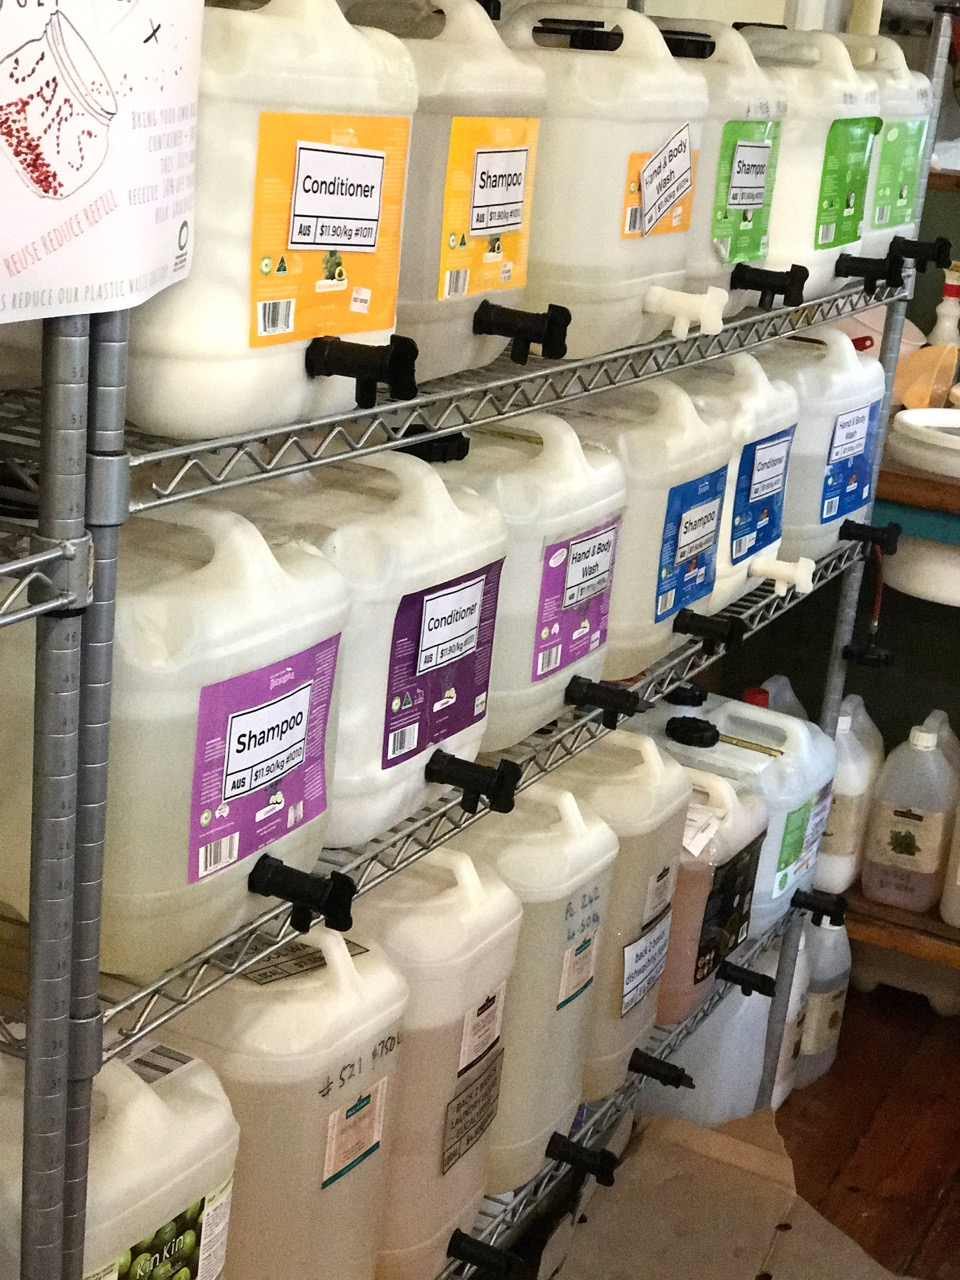 Where to buy bulk, fill your own container, plastic packaging free beauty and cleaning products in Melbourne, Australia. We're joining the #WarOnWaste and taking part in Plastic Free July.